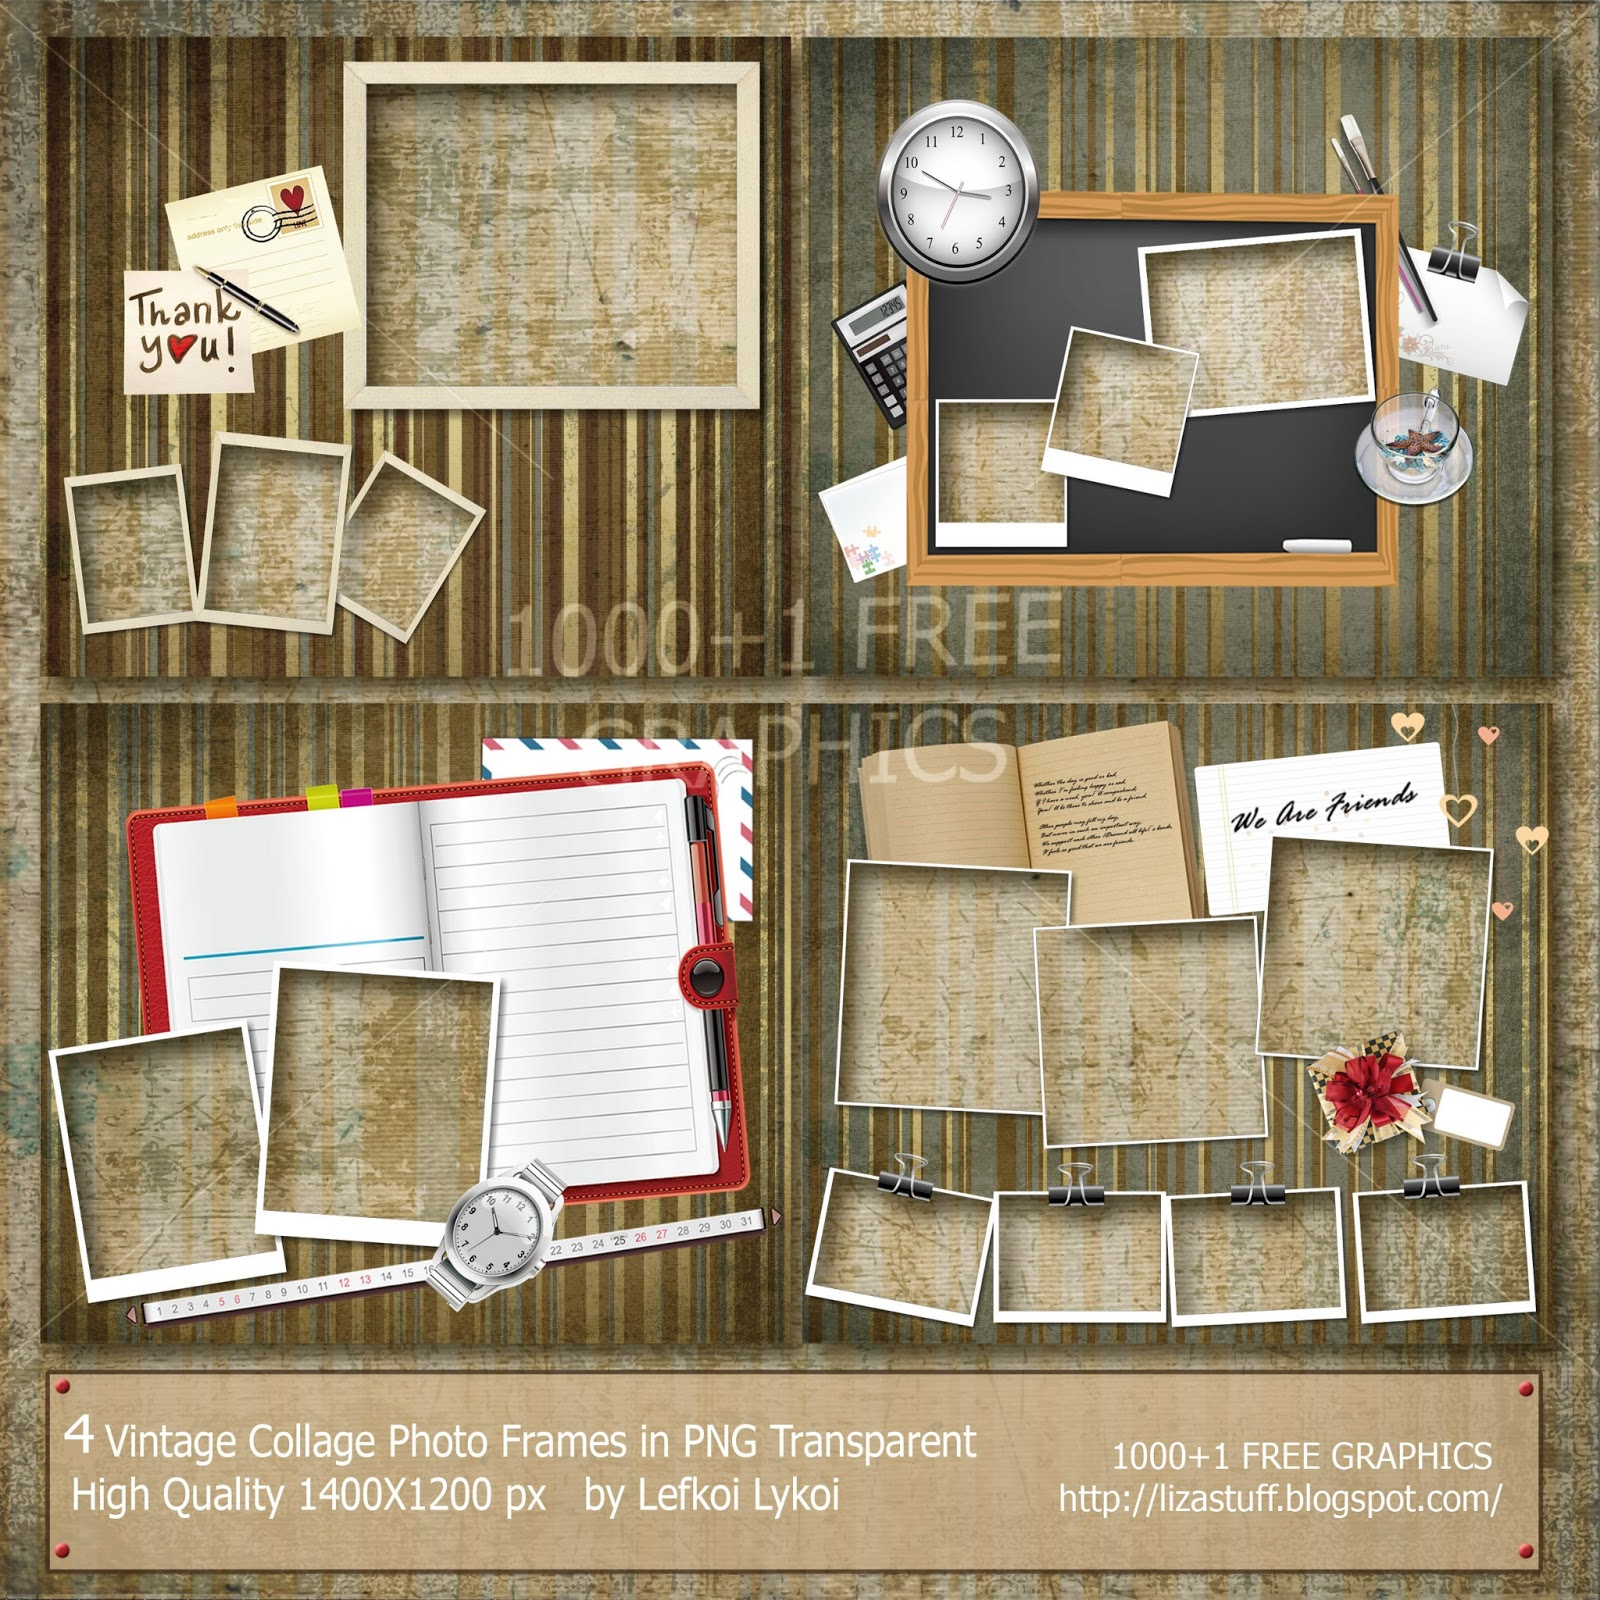 8 Vintage Collage Photo Frames in PNG Transparent High Quality ...